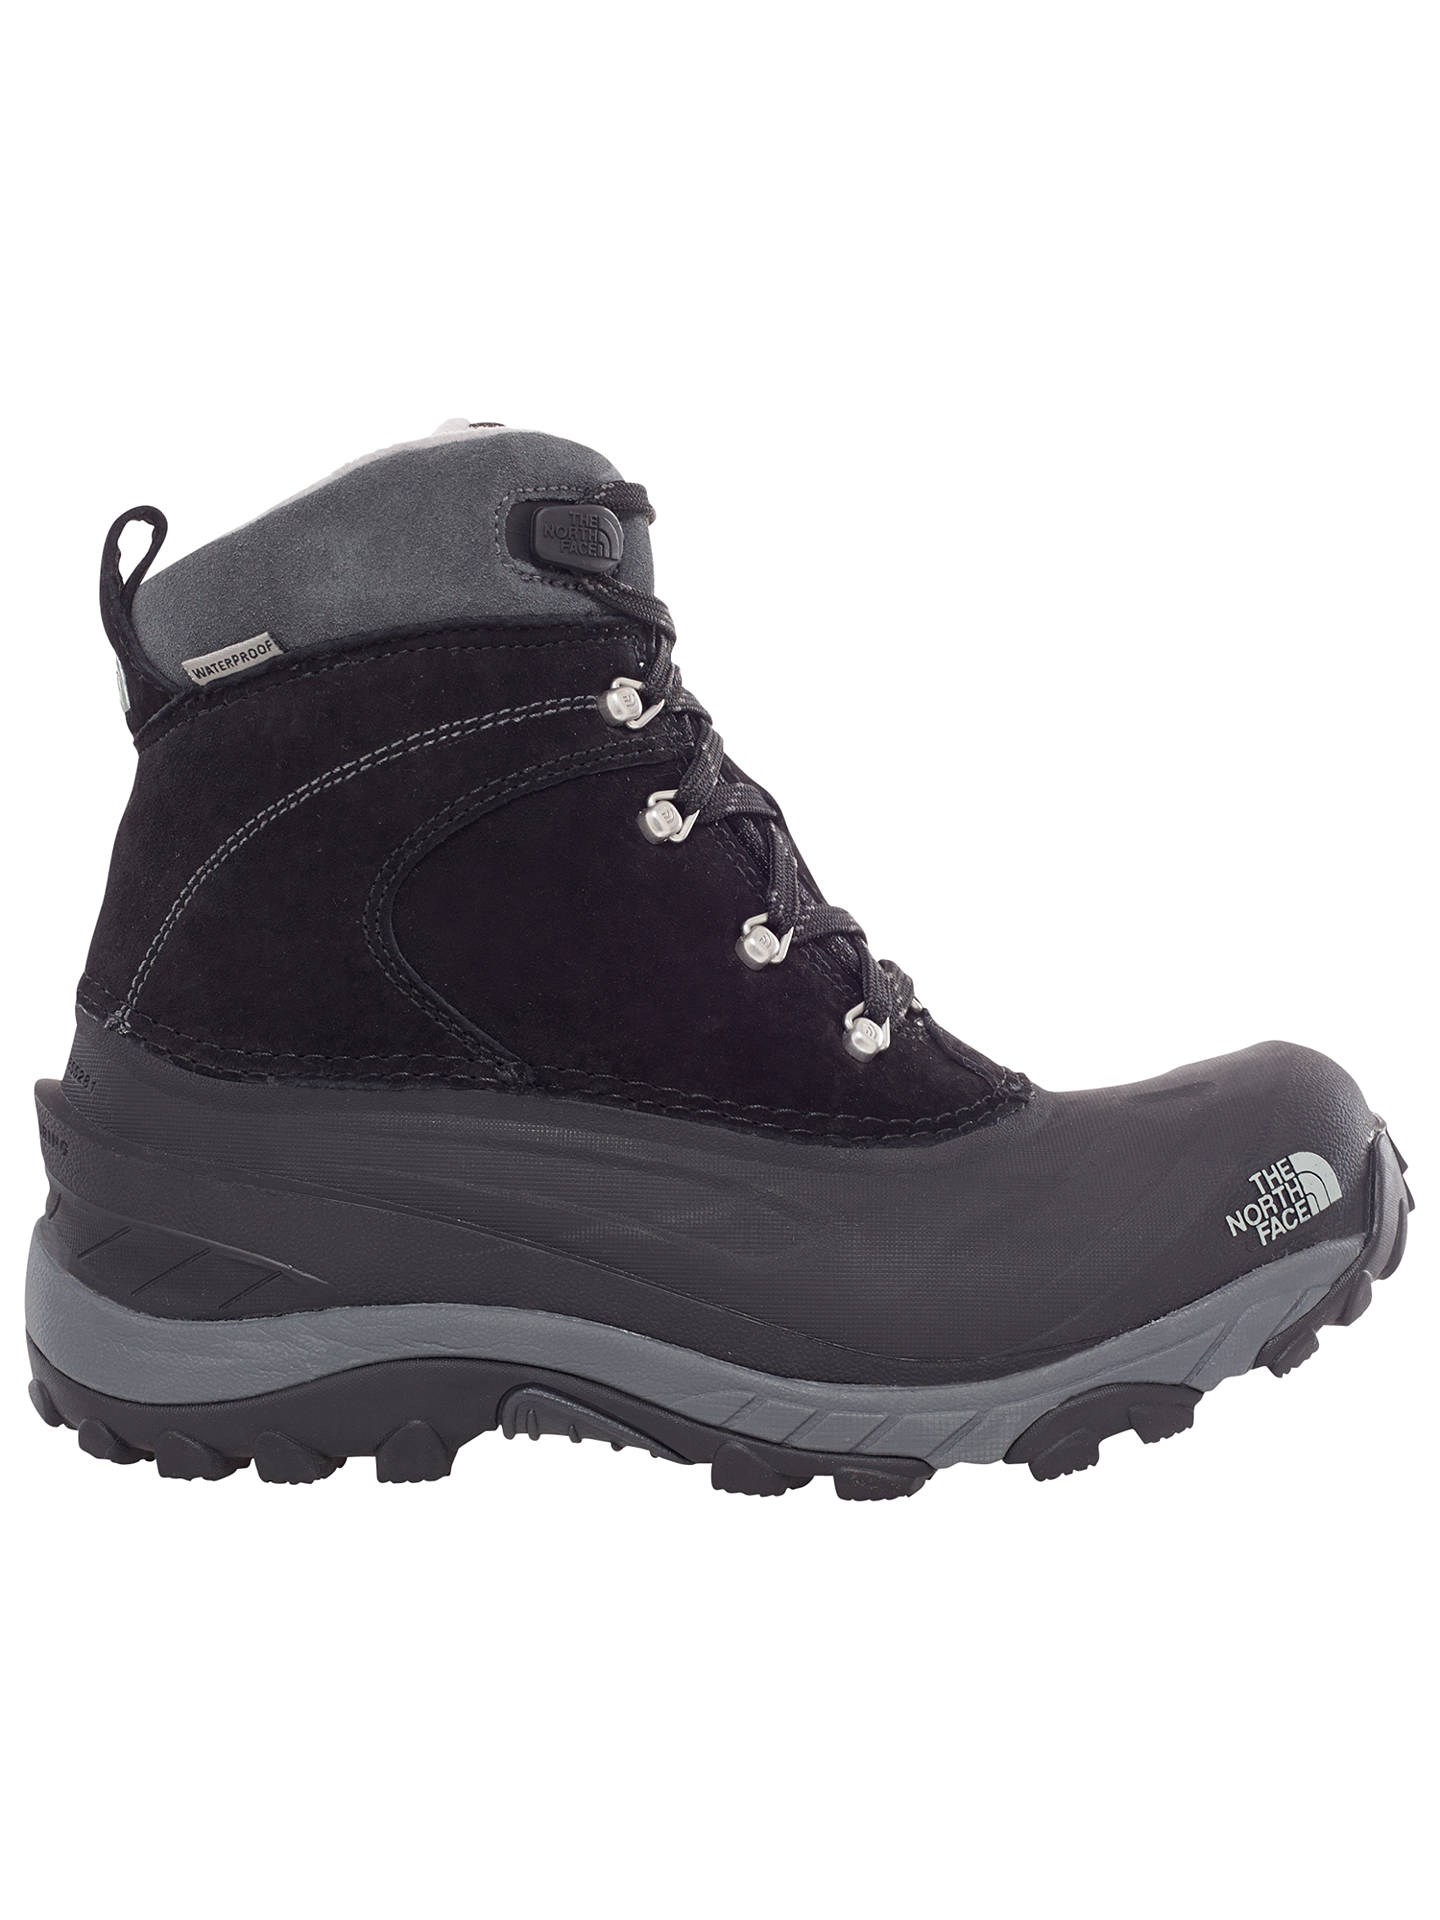 ab4016977 The North Face Chilkat II Waterproof Men's Snow Boot, Black/Griffen ...